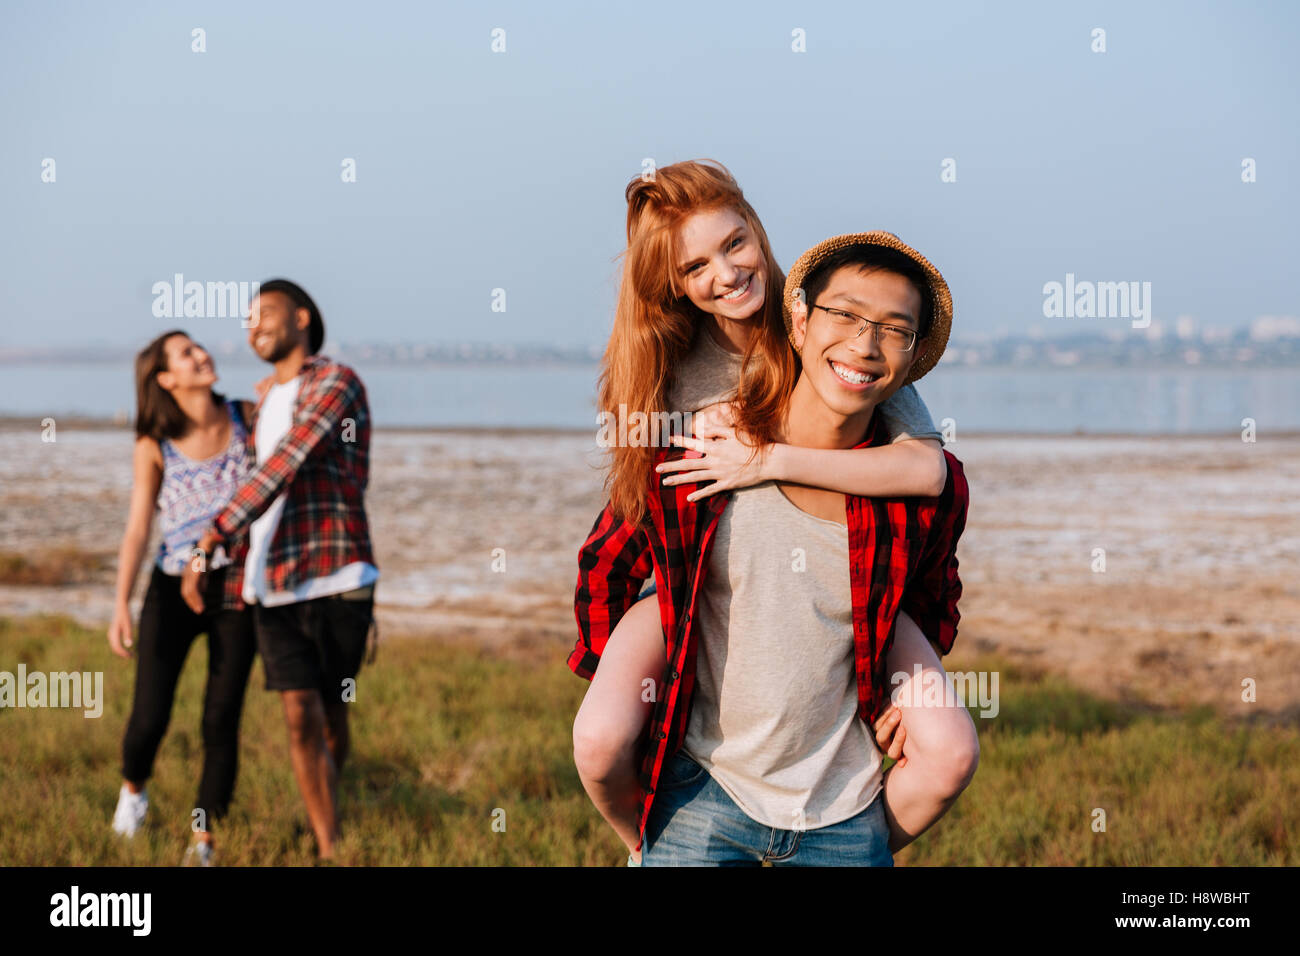 Two happy multiethnic young couples having fun outdoors - Stock Image